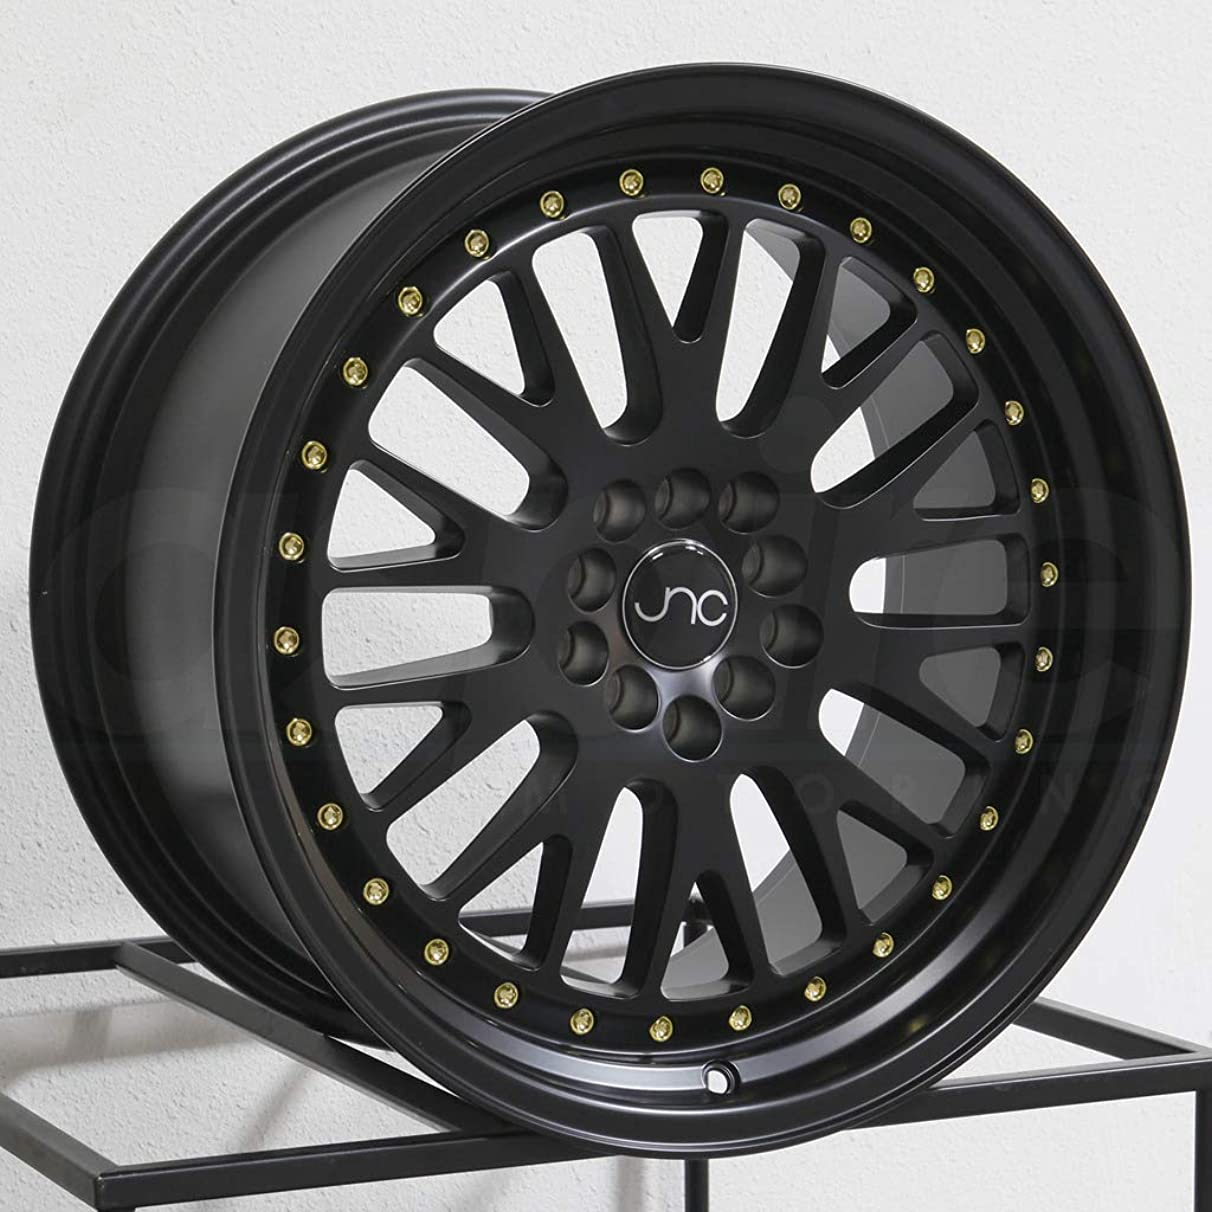 JNC001 Matte Black w/Gold Rivets 15x8 4x100 ET25 Offset Wheel Rim